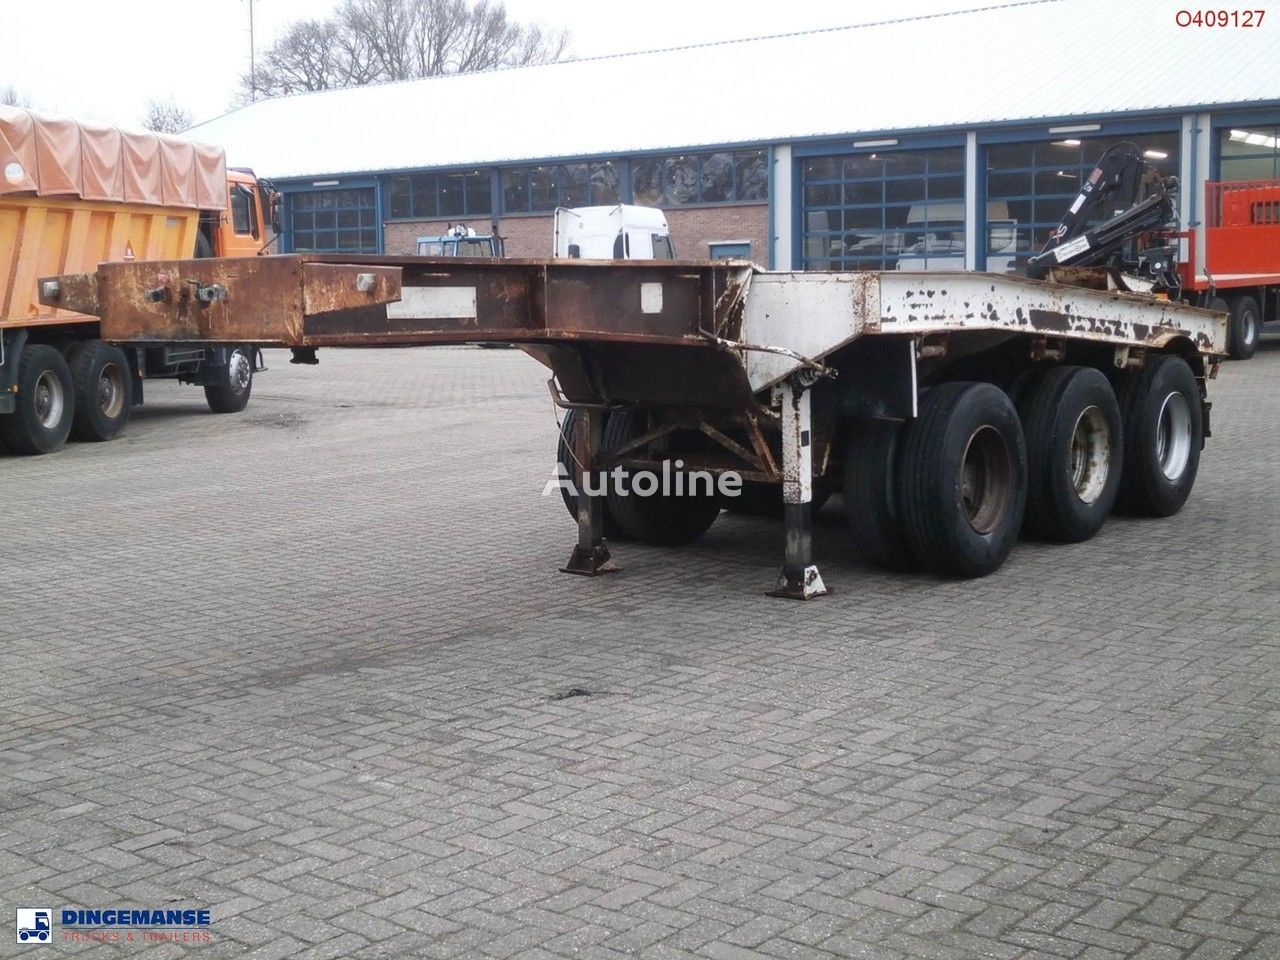 TRAYL-ONA 3-axle dolly trailer / 62000 kg Containerauflieger